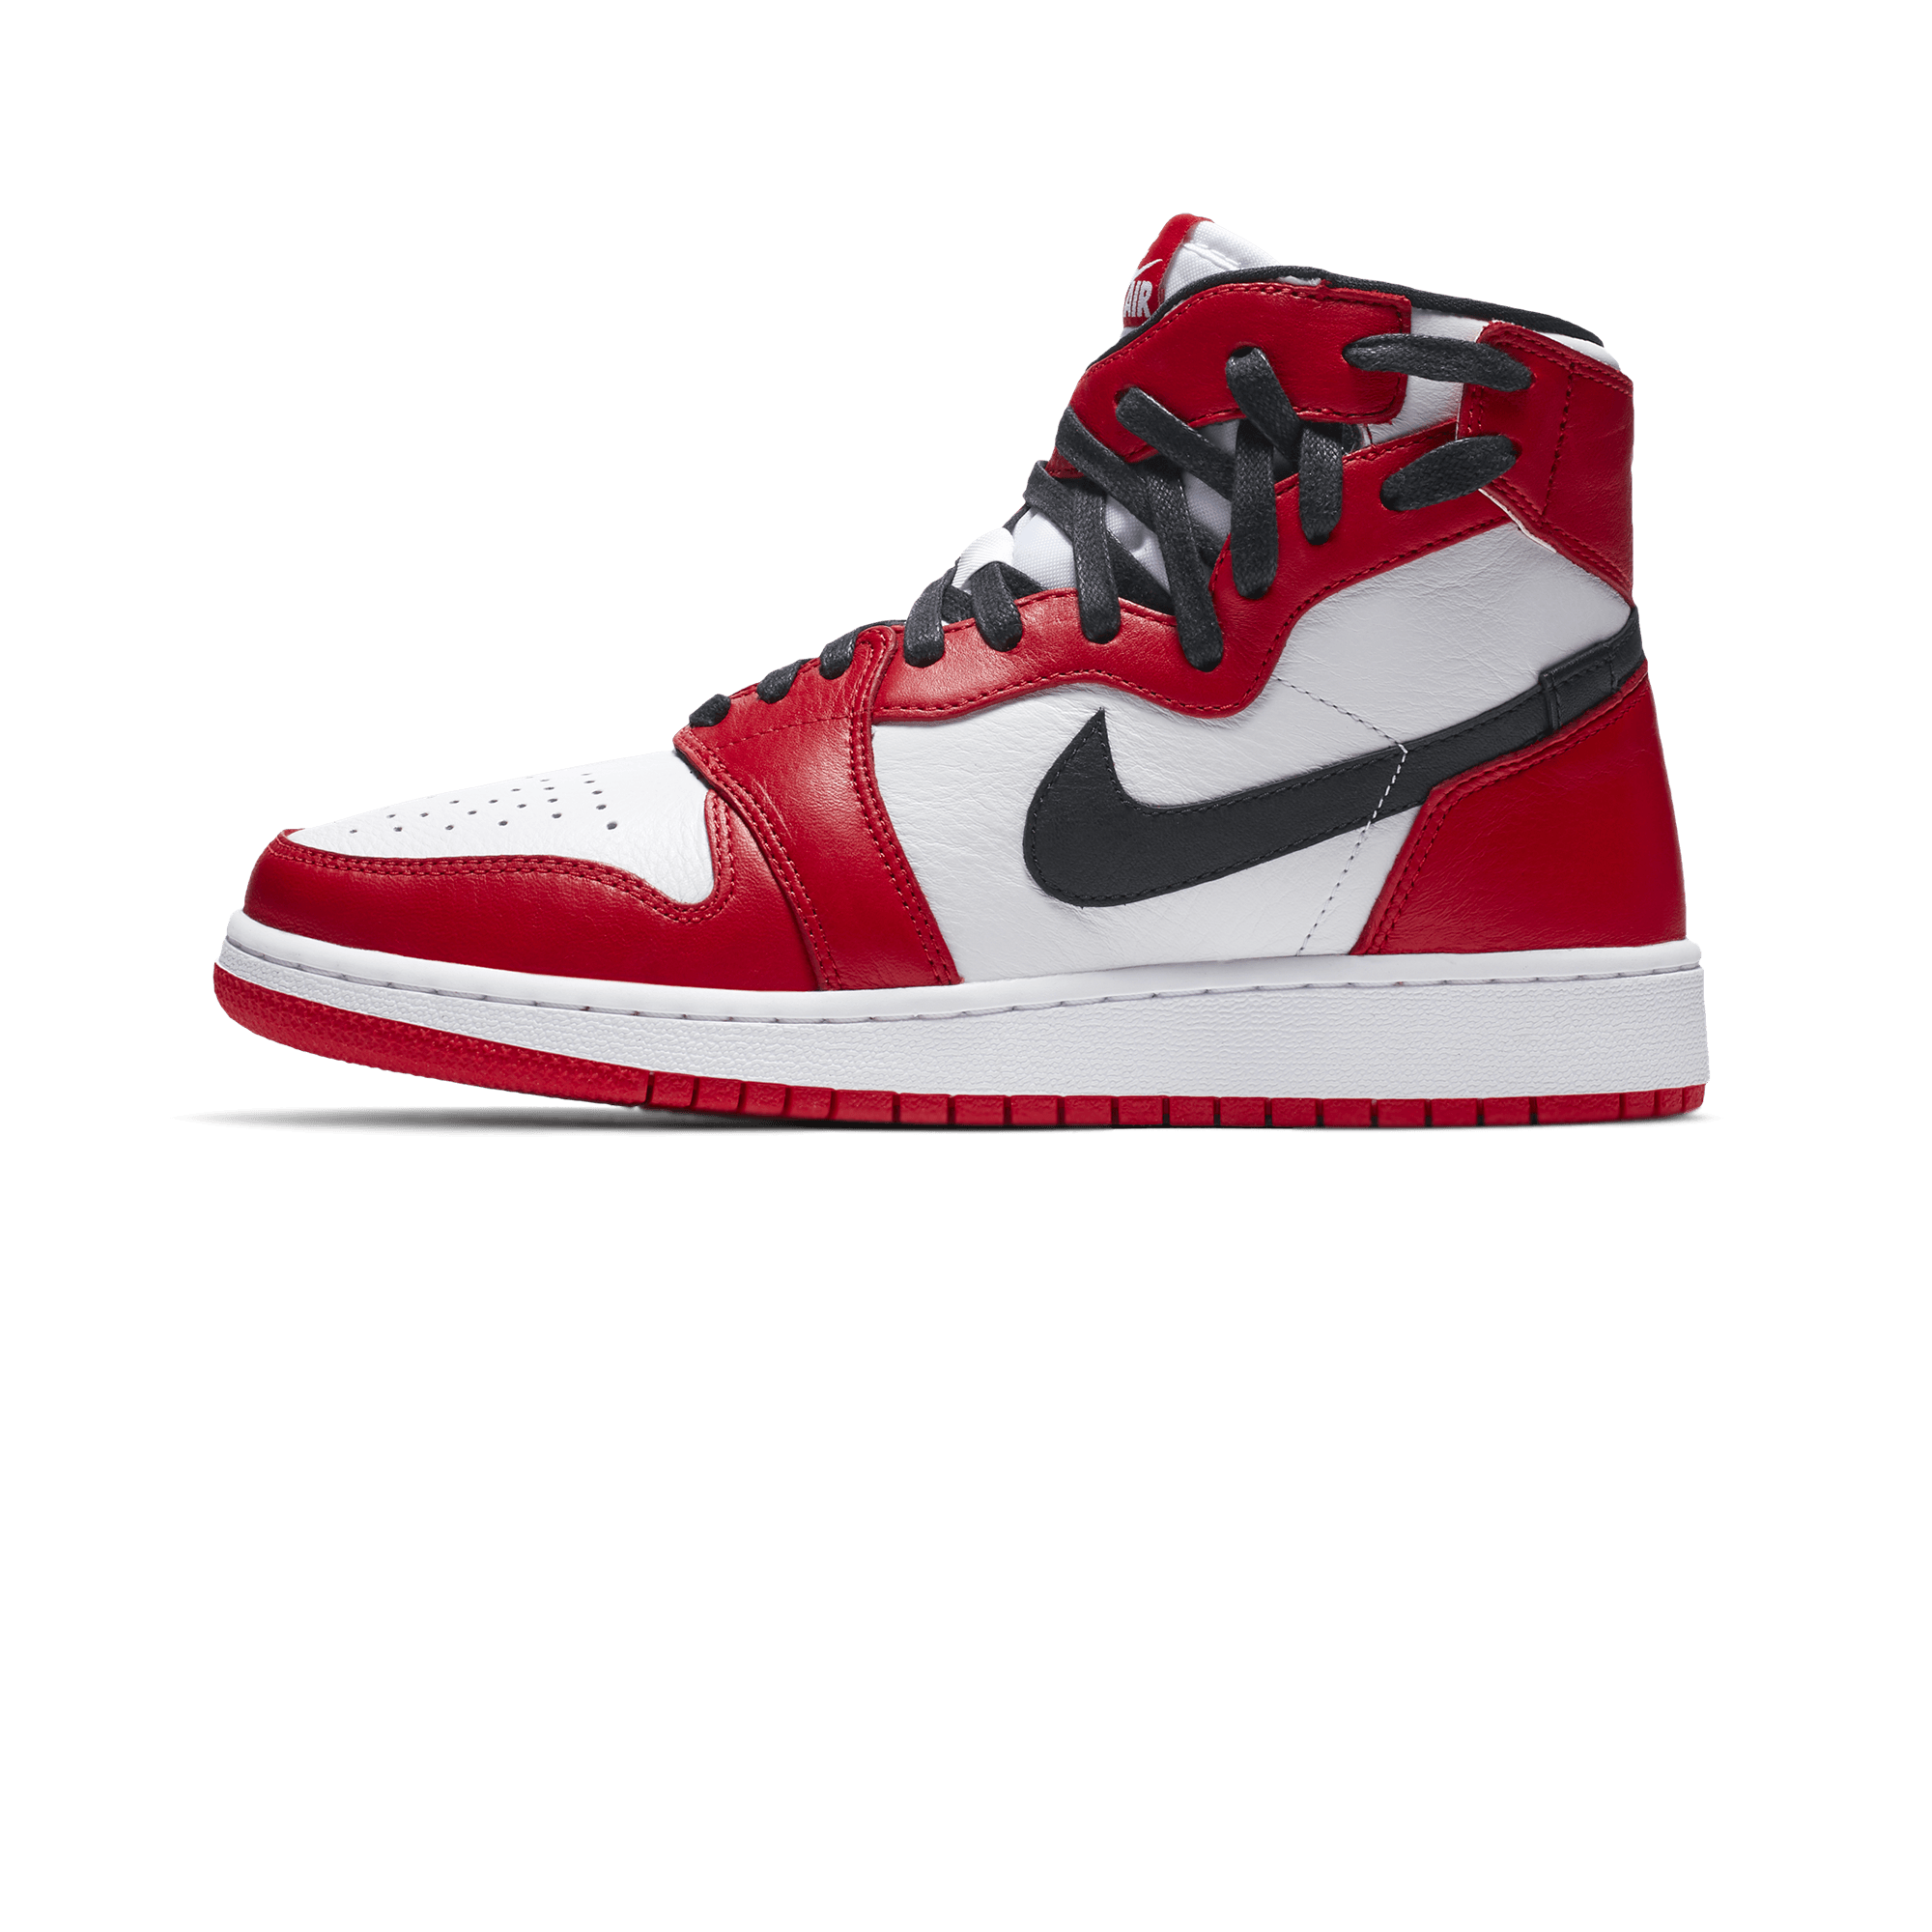 best cheap 3883c 25365 Air Jordan 1 Rebel XX OG W white / black / university red - Woman |  Holypopstore.com